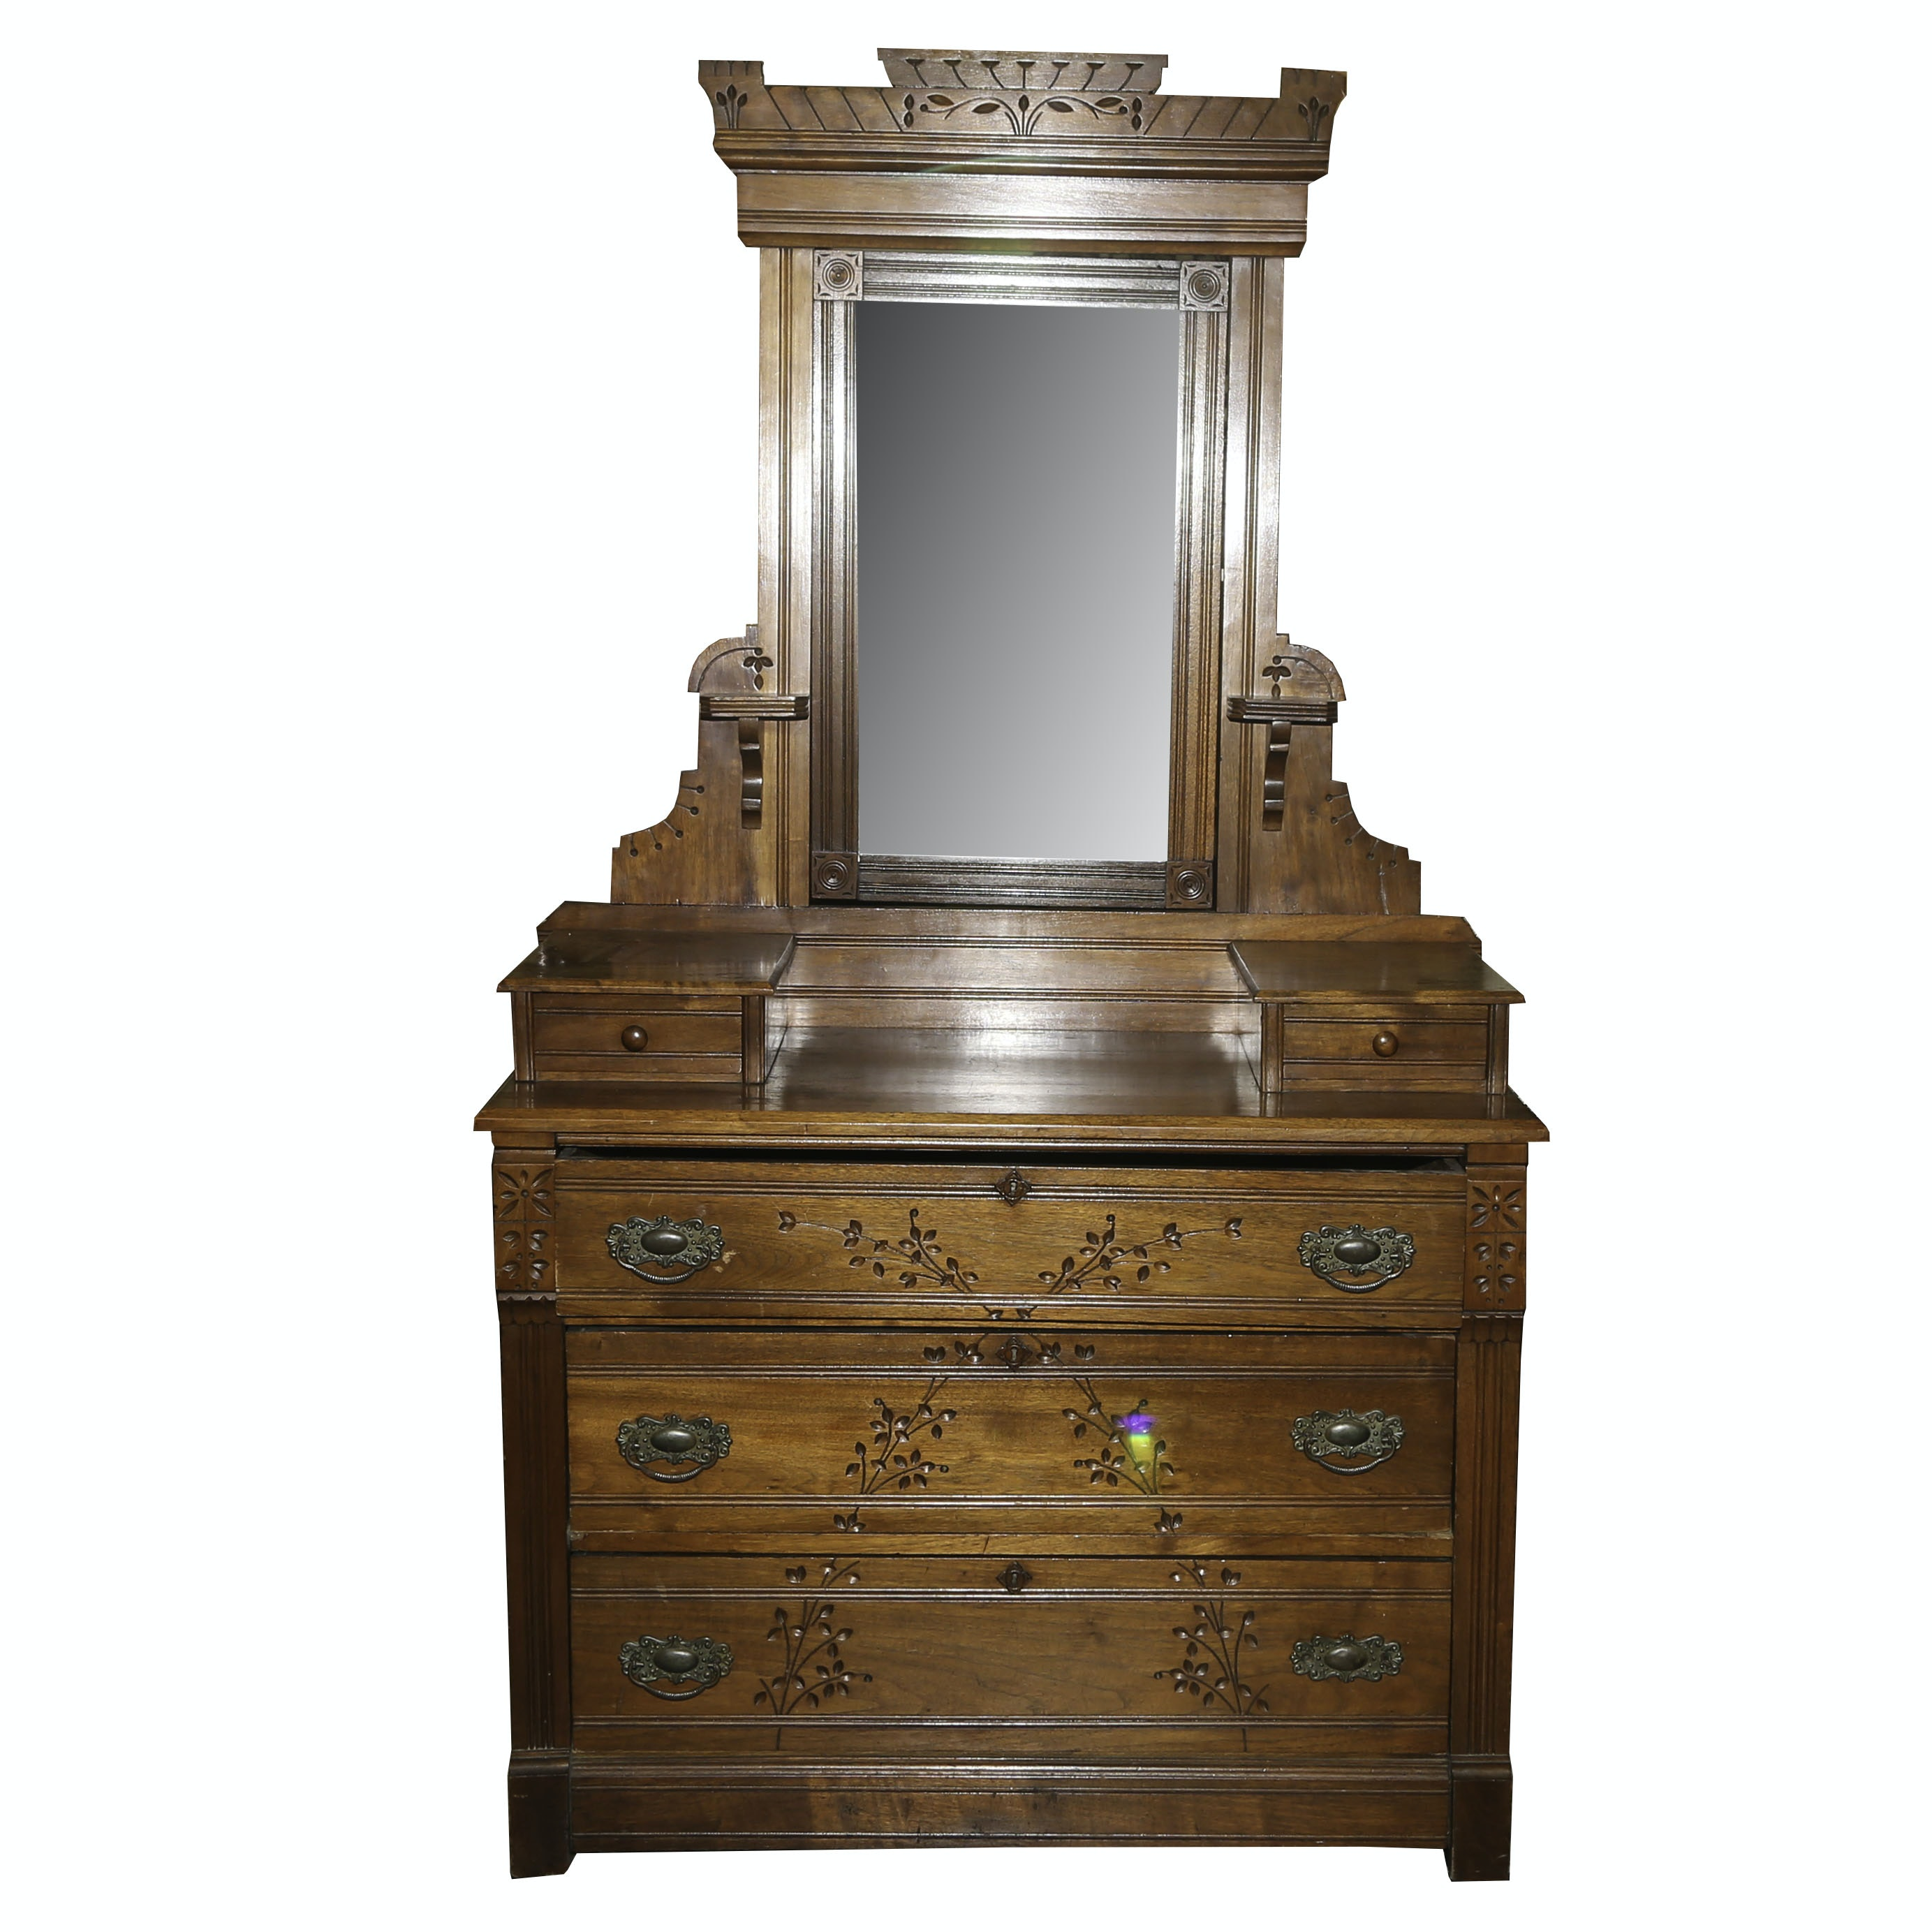 Victorian Walnut Chest with Mirror by O.D. Hartford, Late 19th Century